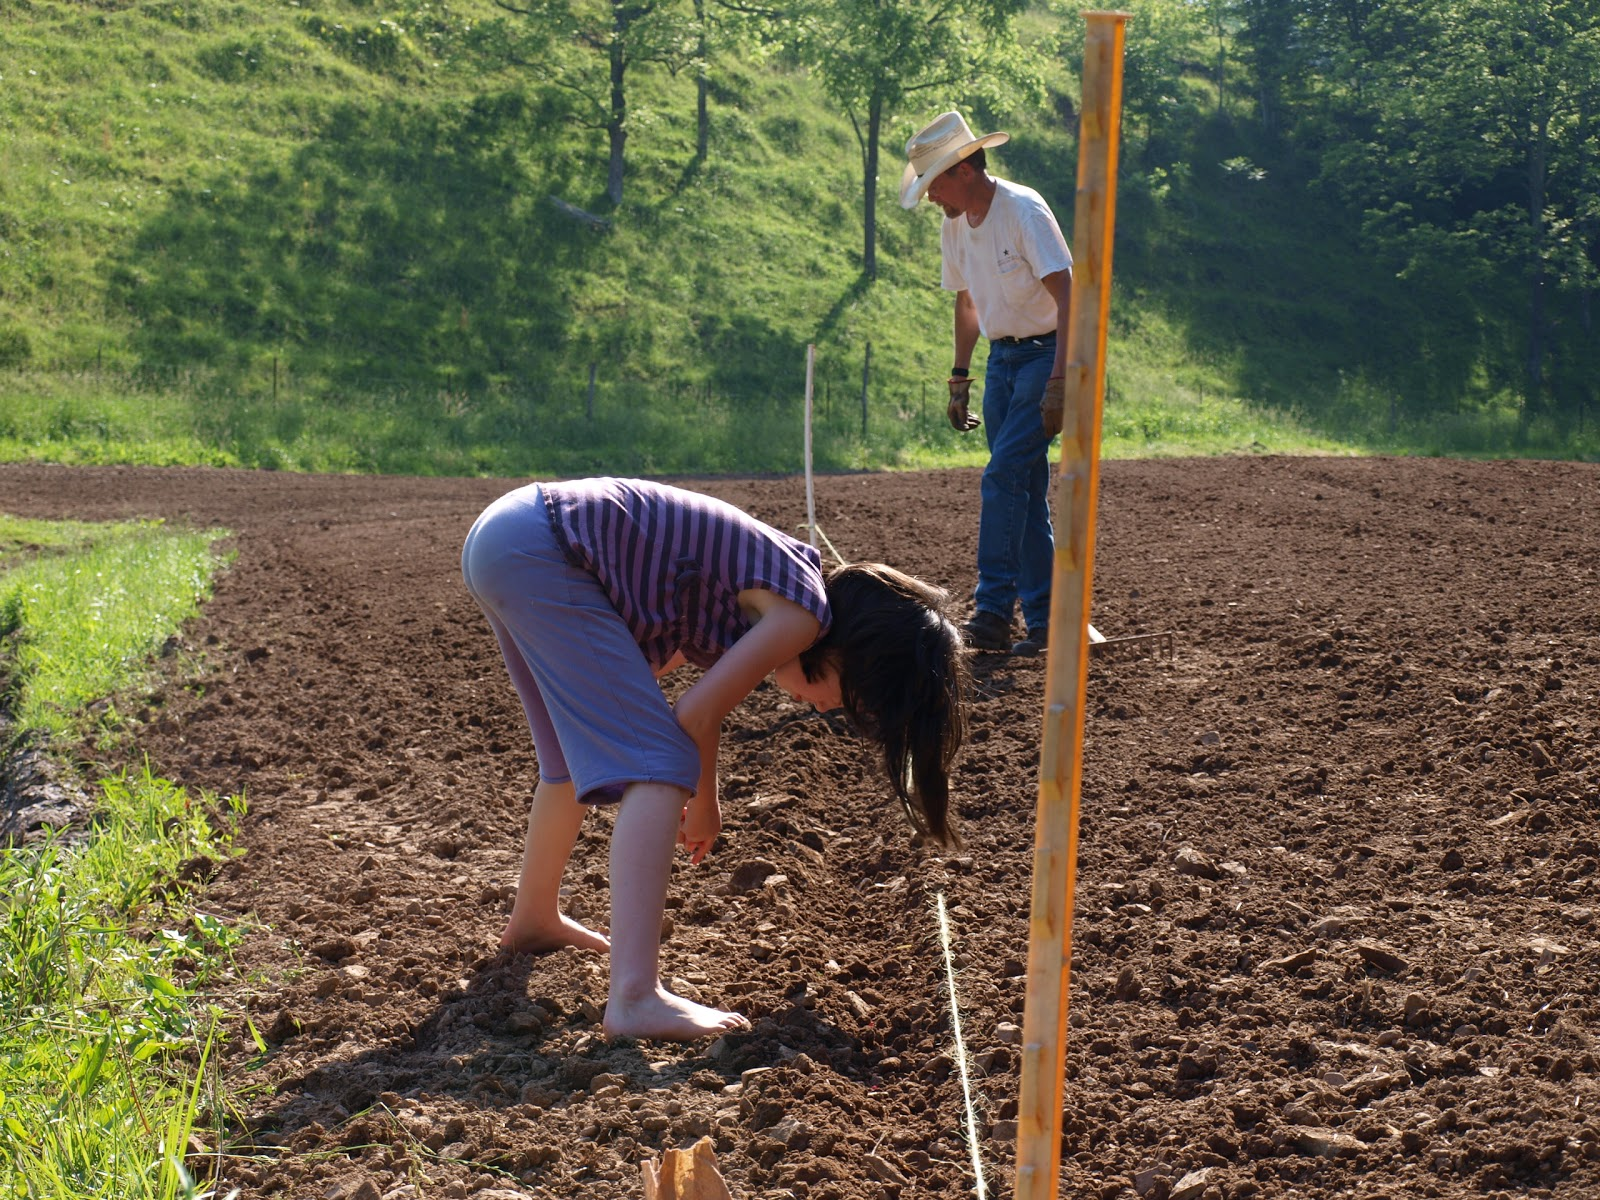 playing with soil becoming a farmer Soil ph is a measure of acidity or alkalinity a ph of 7 is neutral, above 7 is alkaline and below 7 is acid because ph is measured on a logarithimc scale, a ph of 6 is 10 times more acid than a ph of 7.